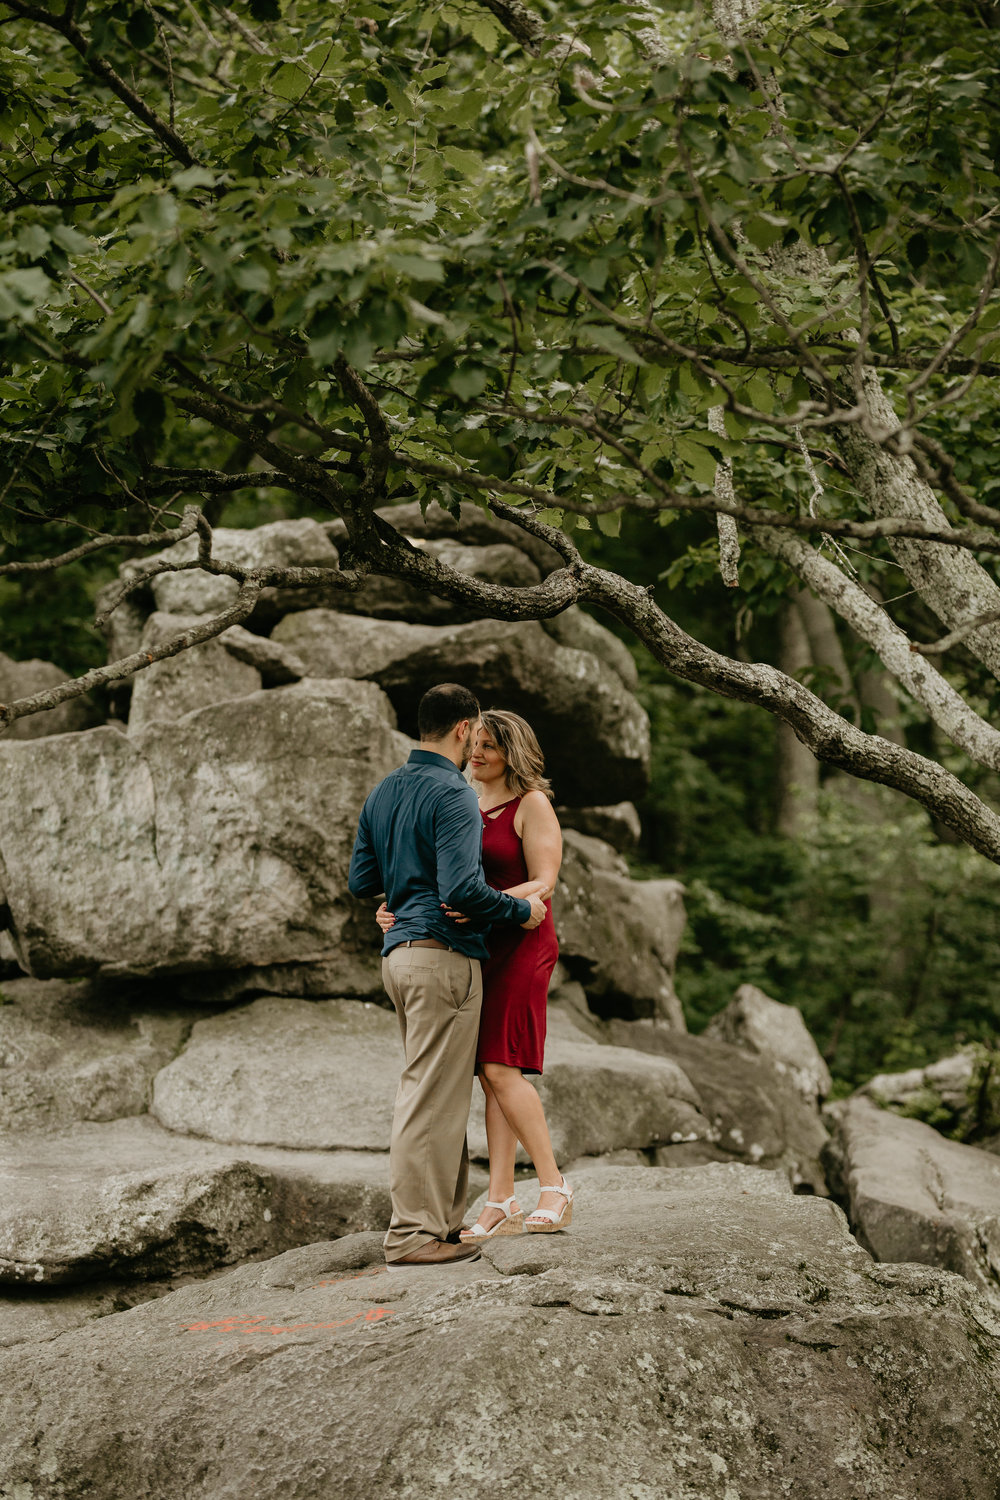 Nicole-Daacke-Photography-rock-state-park-overlook-king-queen-seat-maryland-hiking-adventure-engagement-session-photos-portraits-summer-bel-air-dog-engagement-session-17.jpg